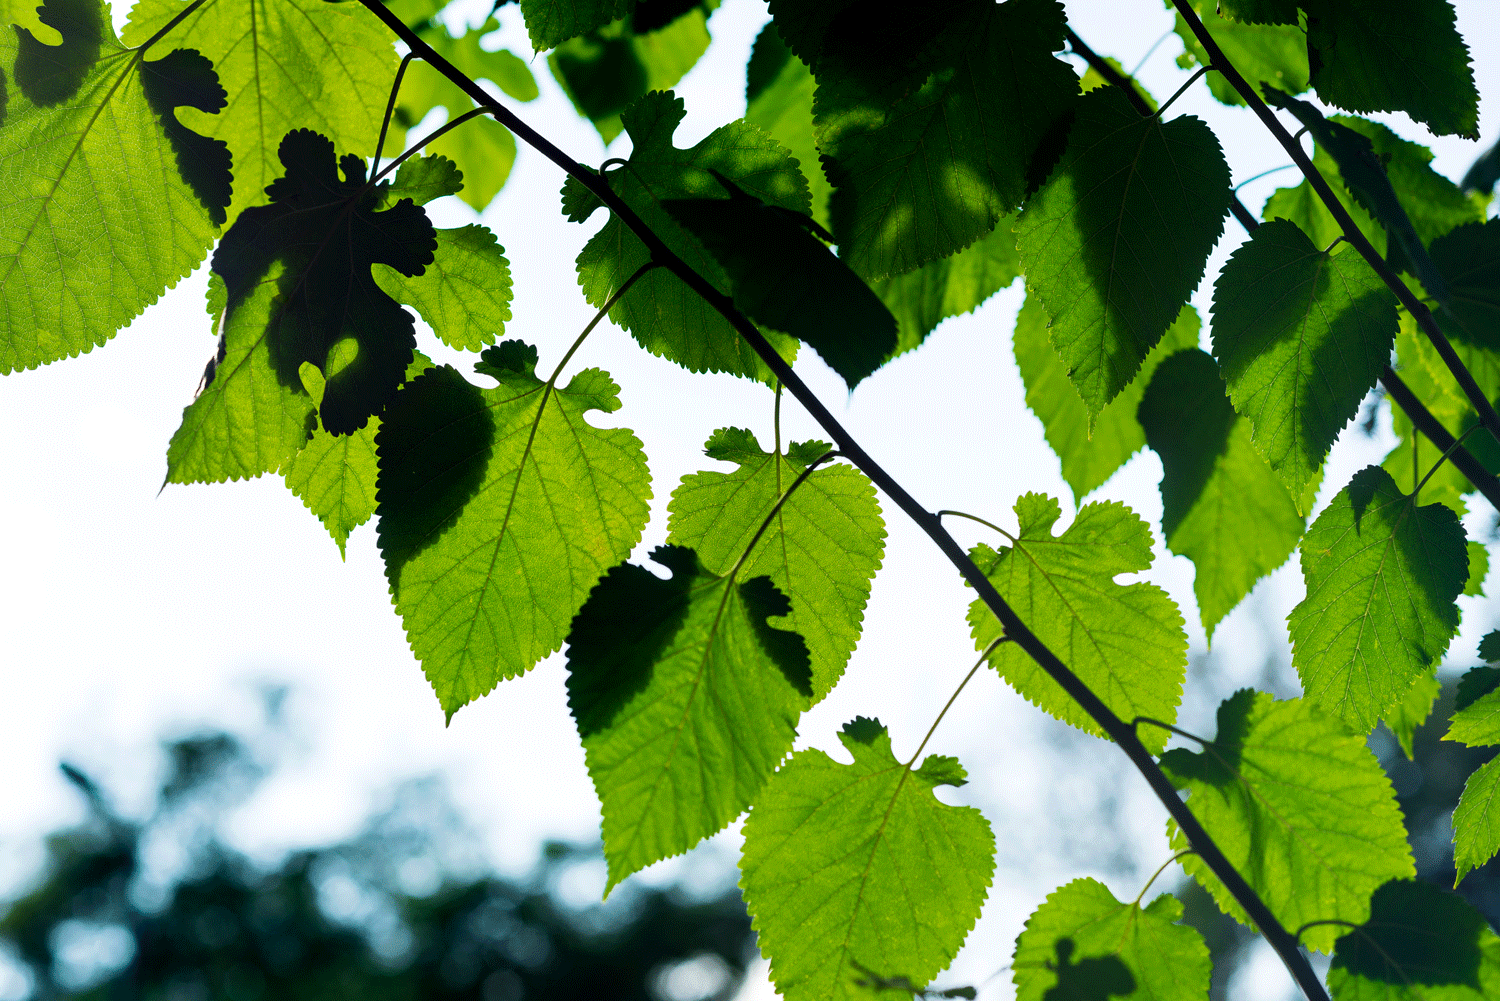 Quantum physics seemingly hold the secret to the remarkable efficiency of photosynthesis. Photo: iStock.com/EOPITZ